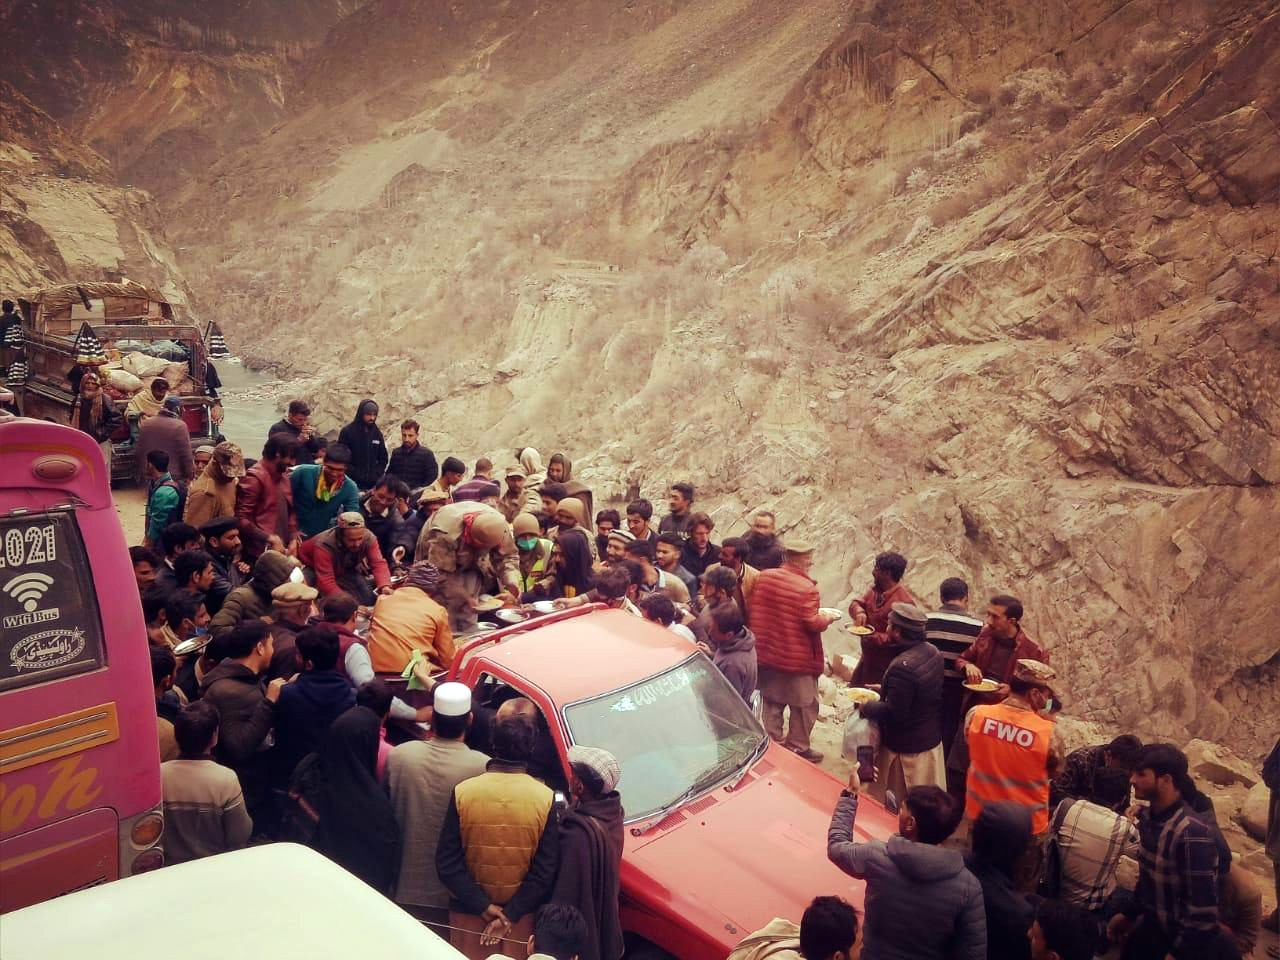 fwo troops served hot meals to all families struck due to landslide photo express